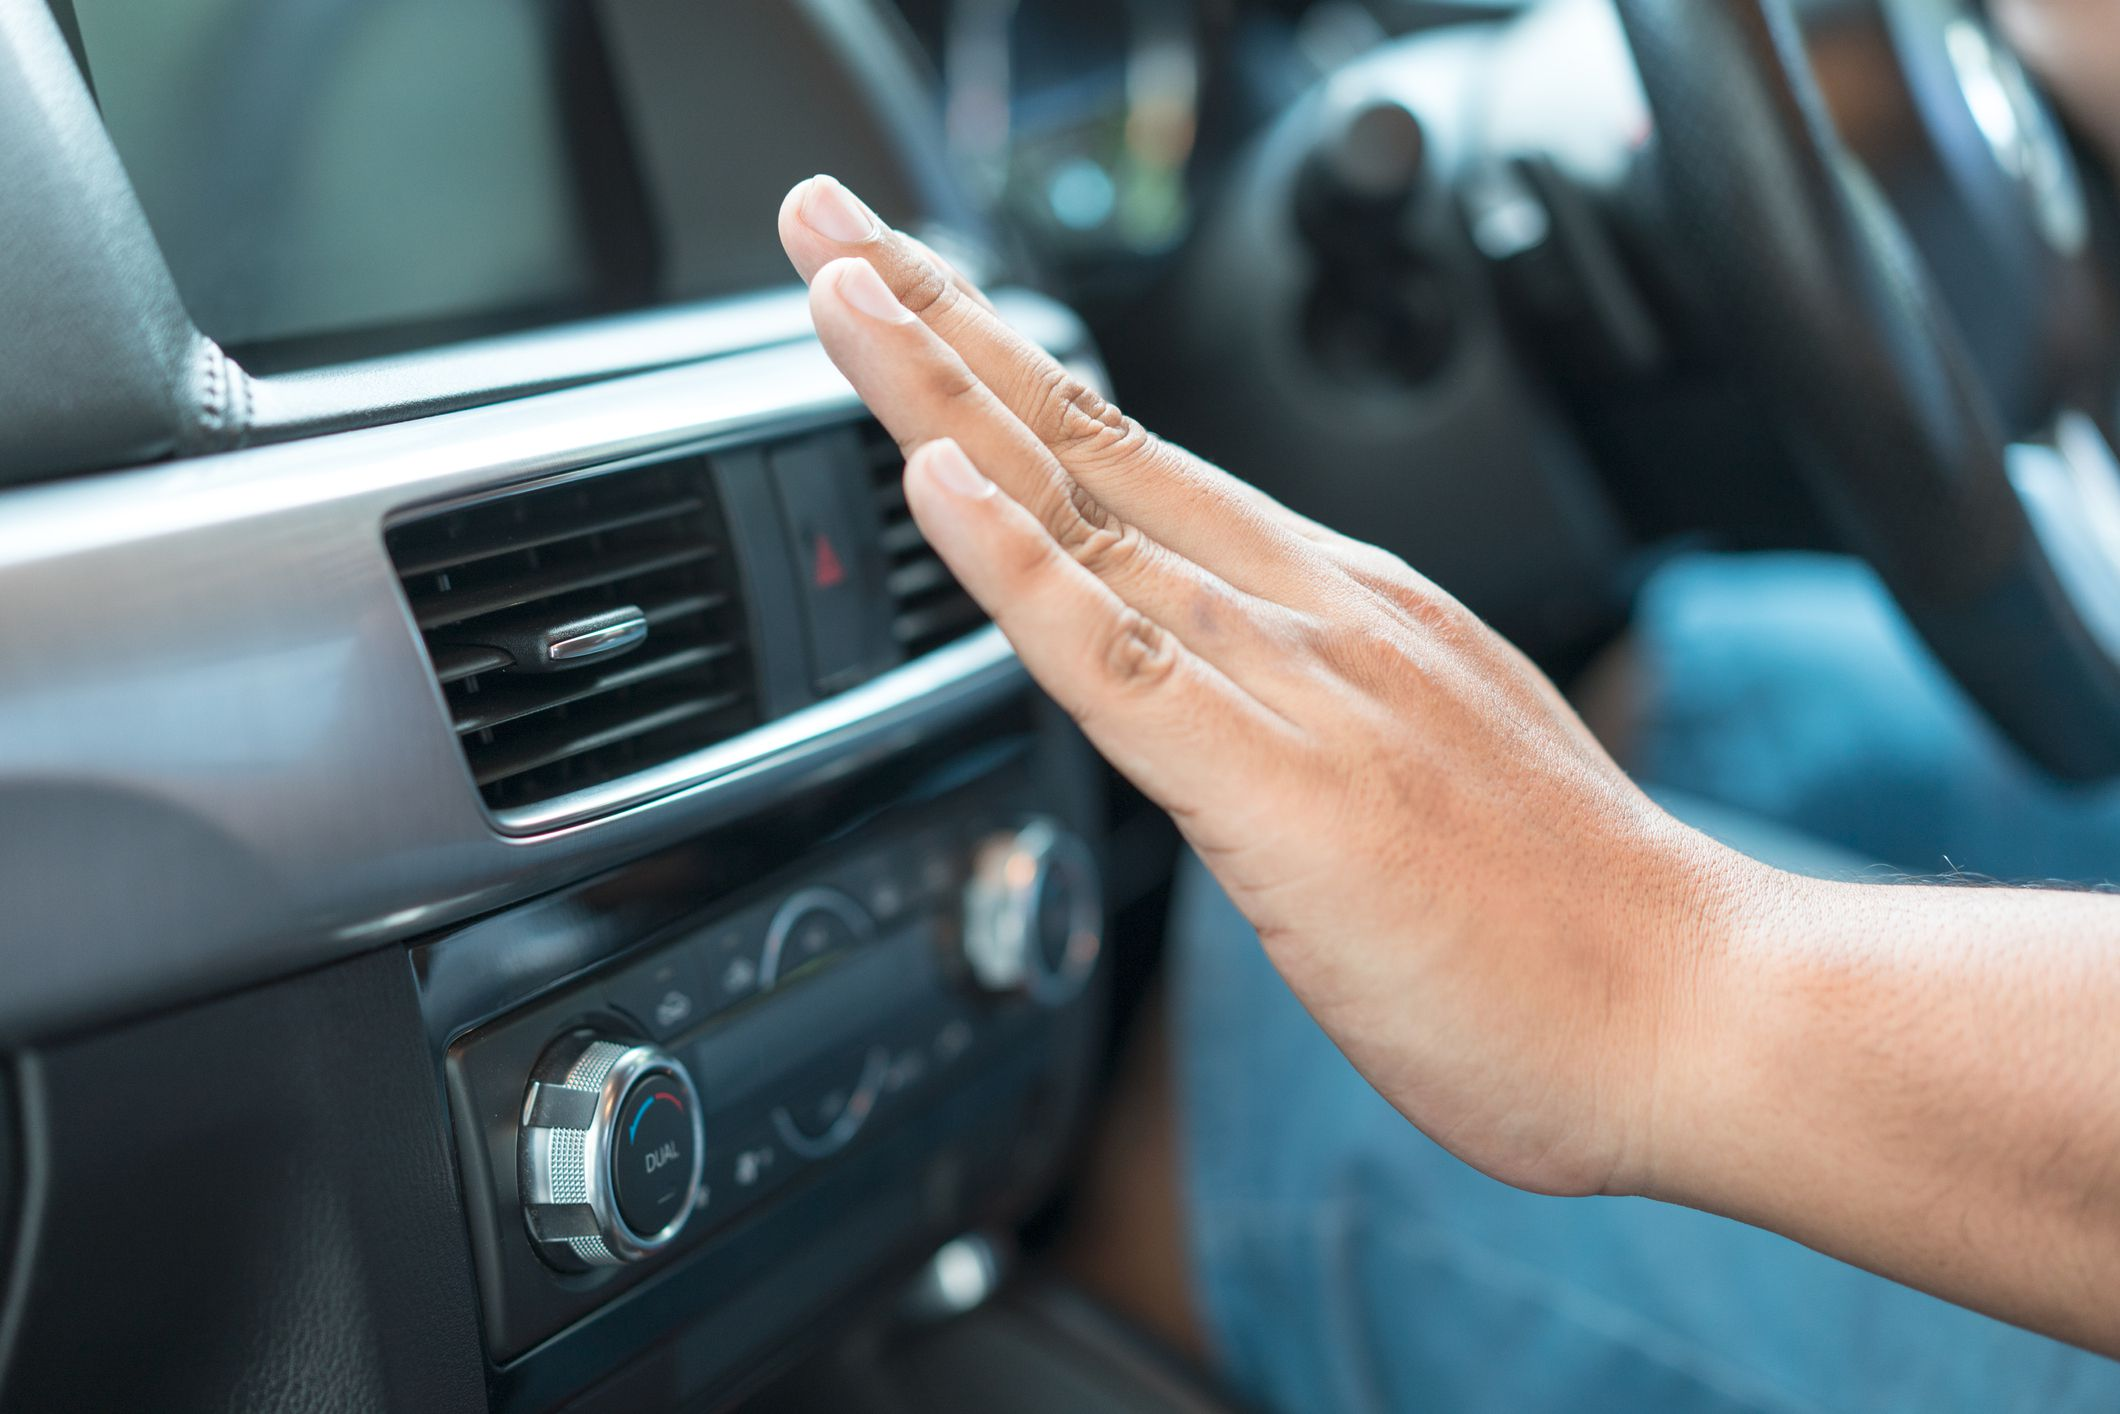 Car Air Conditioner Not Working: Troubleshoot Your Heat/AC When Car Fan Is Not Working